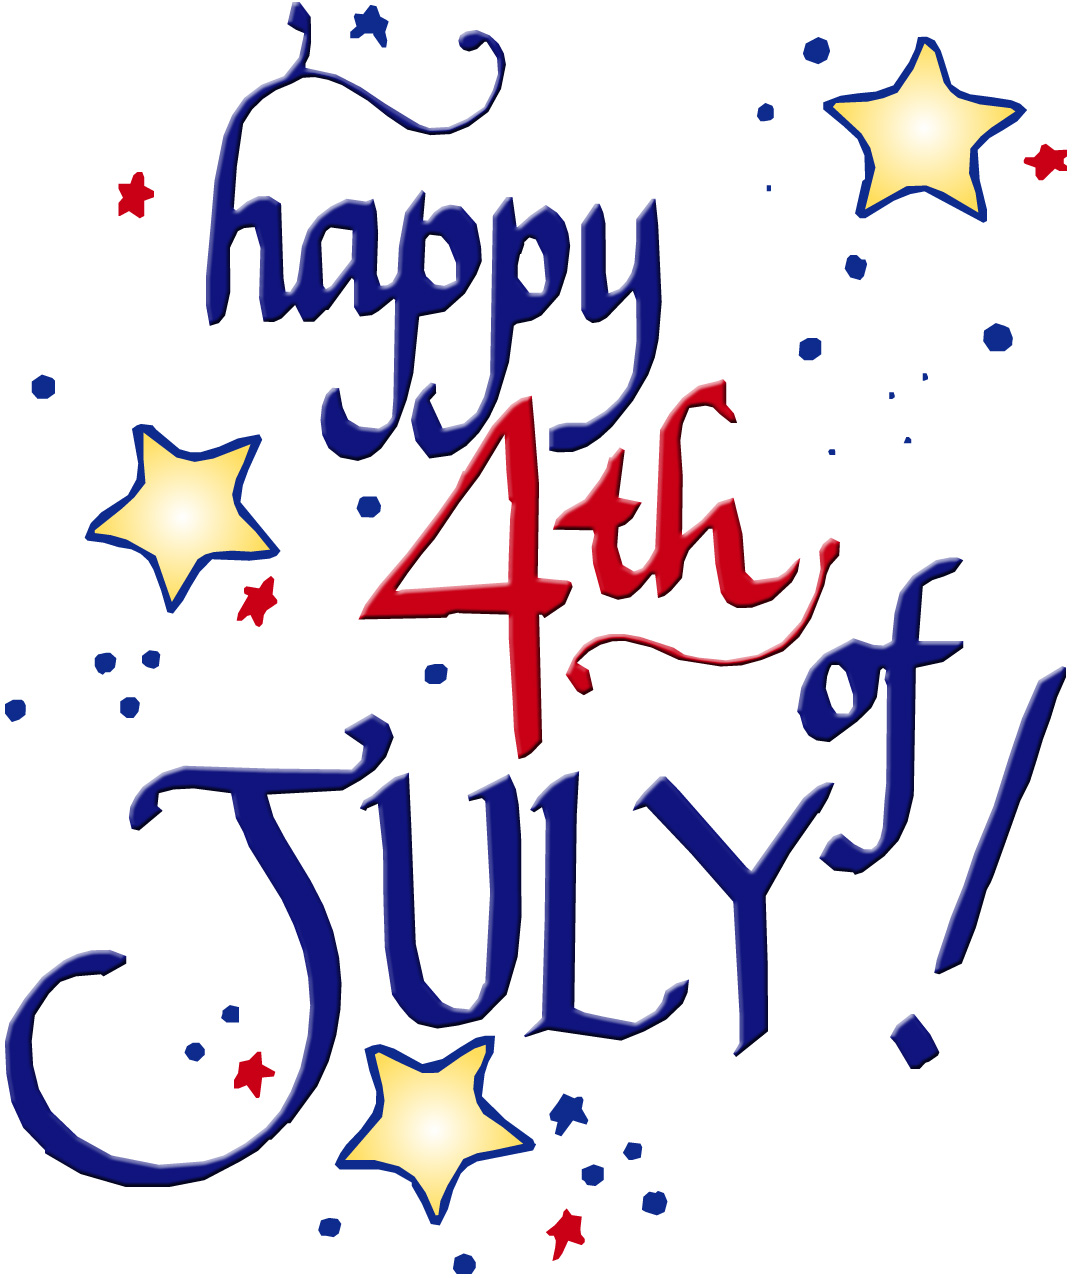 Free Clipart Google Images July 4th Scho-Free Clipart Google Images July 4th School Clipart-14